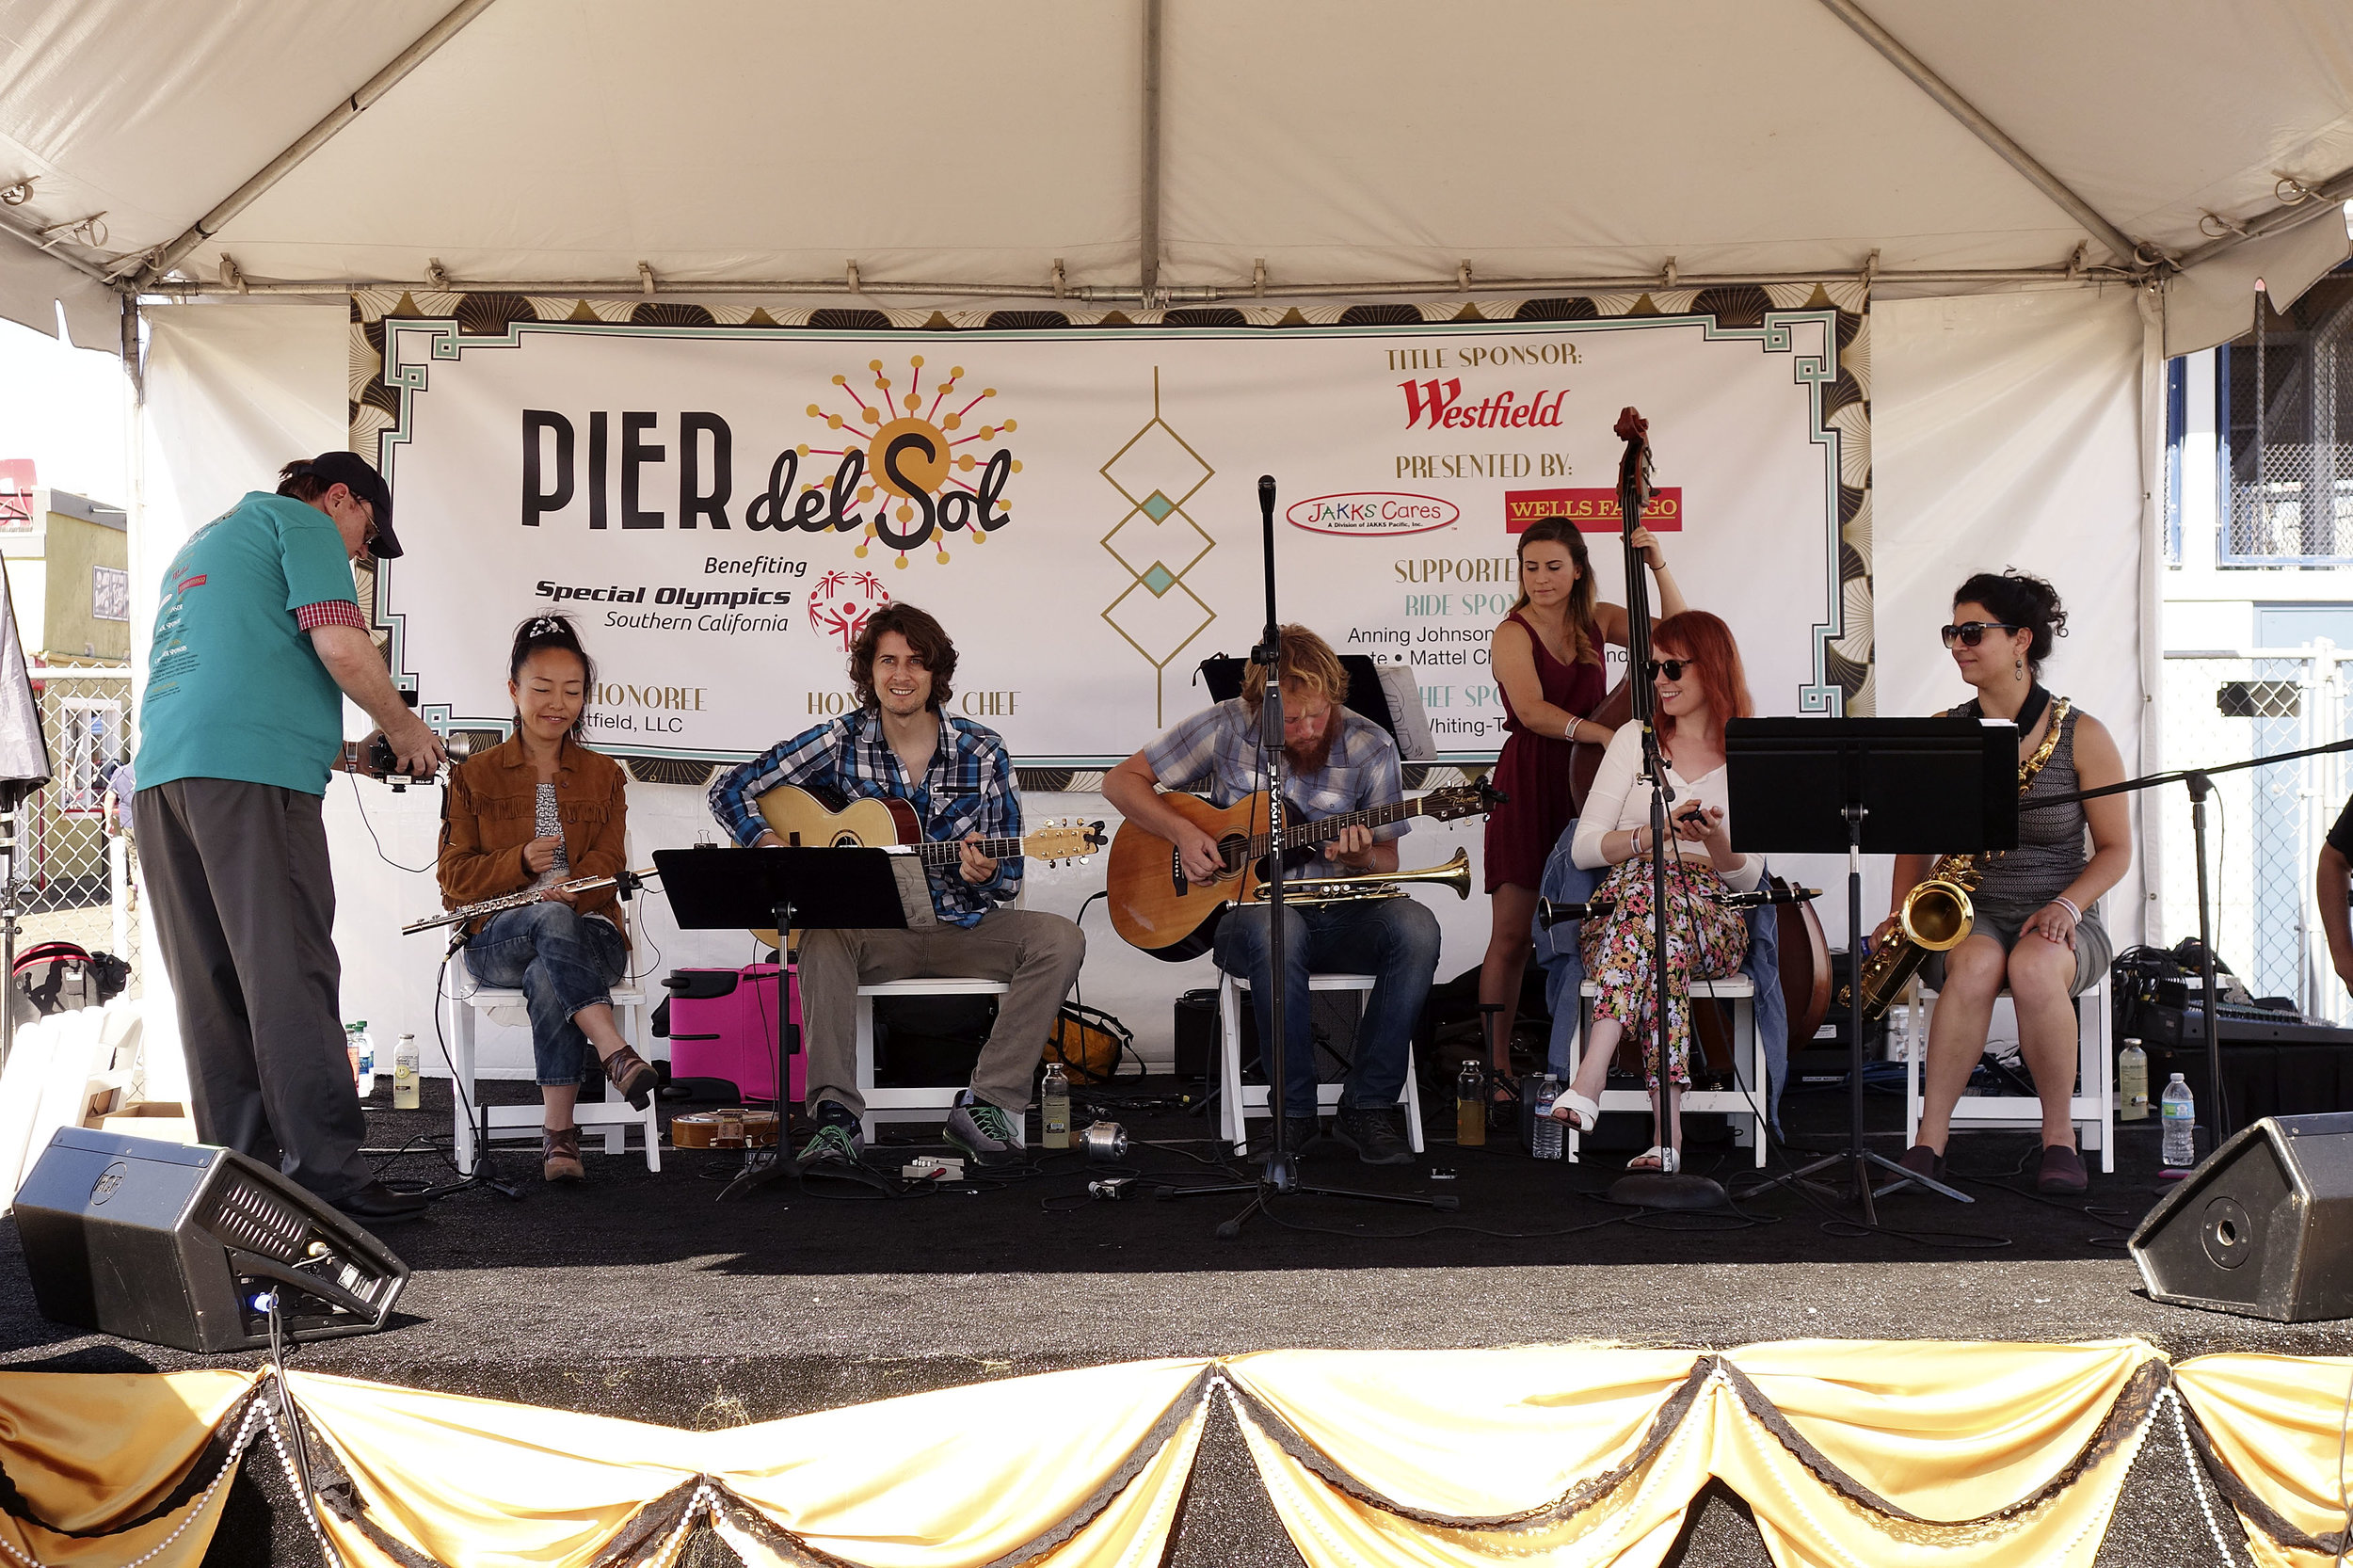 Live music to celebrate the 20th annual Pier Del Sol. 20's themed.